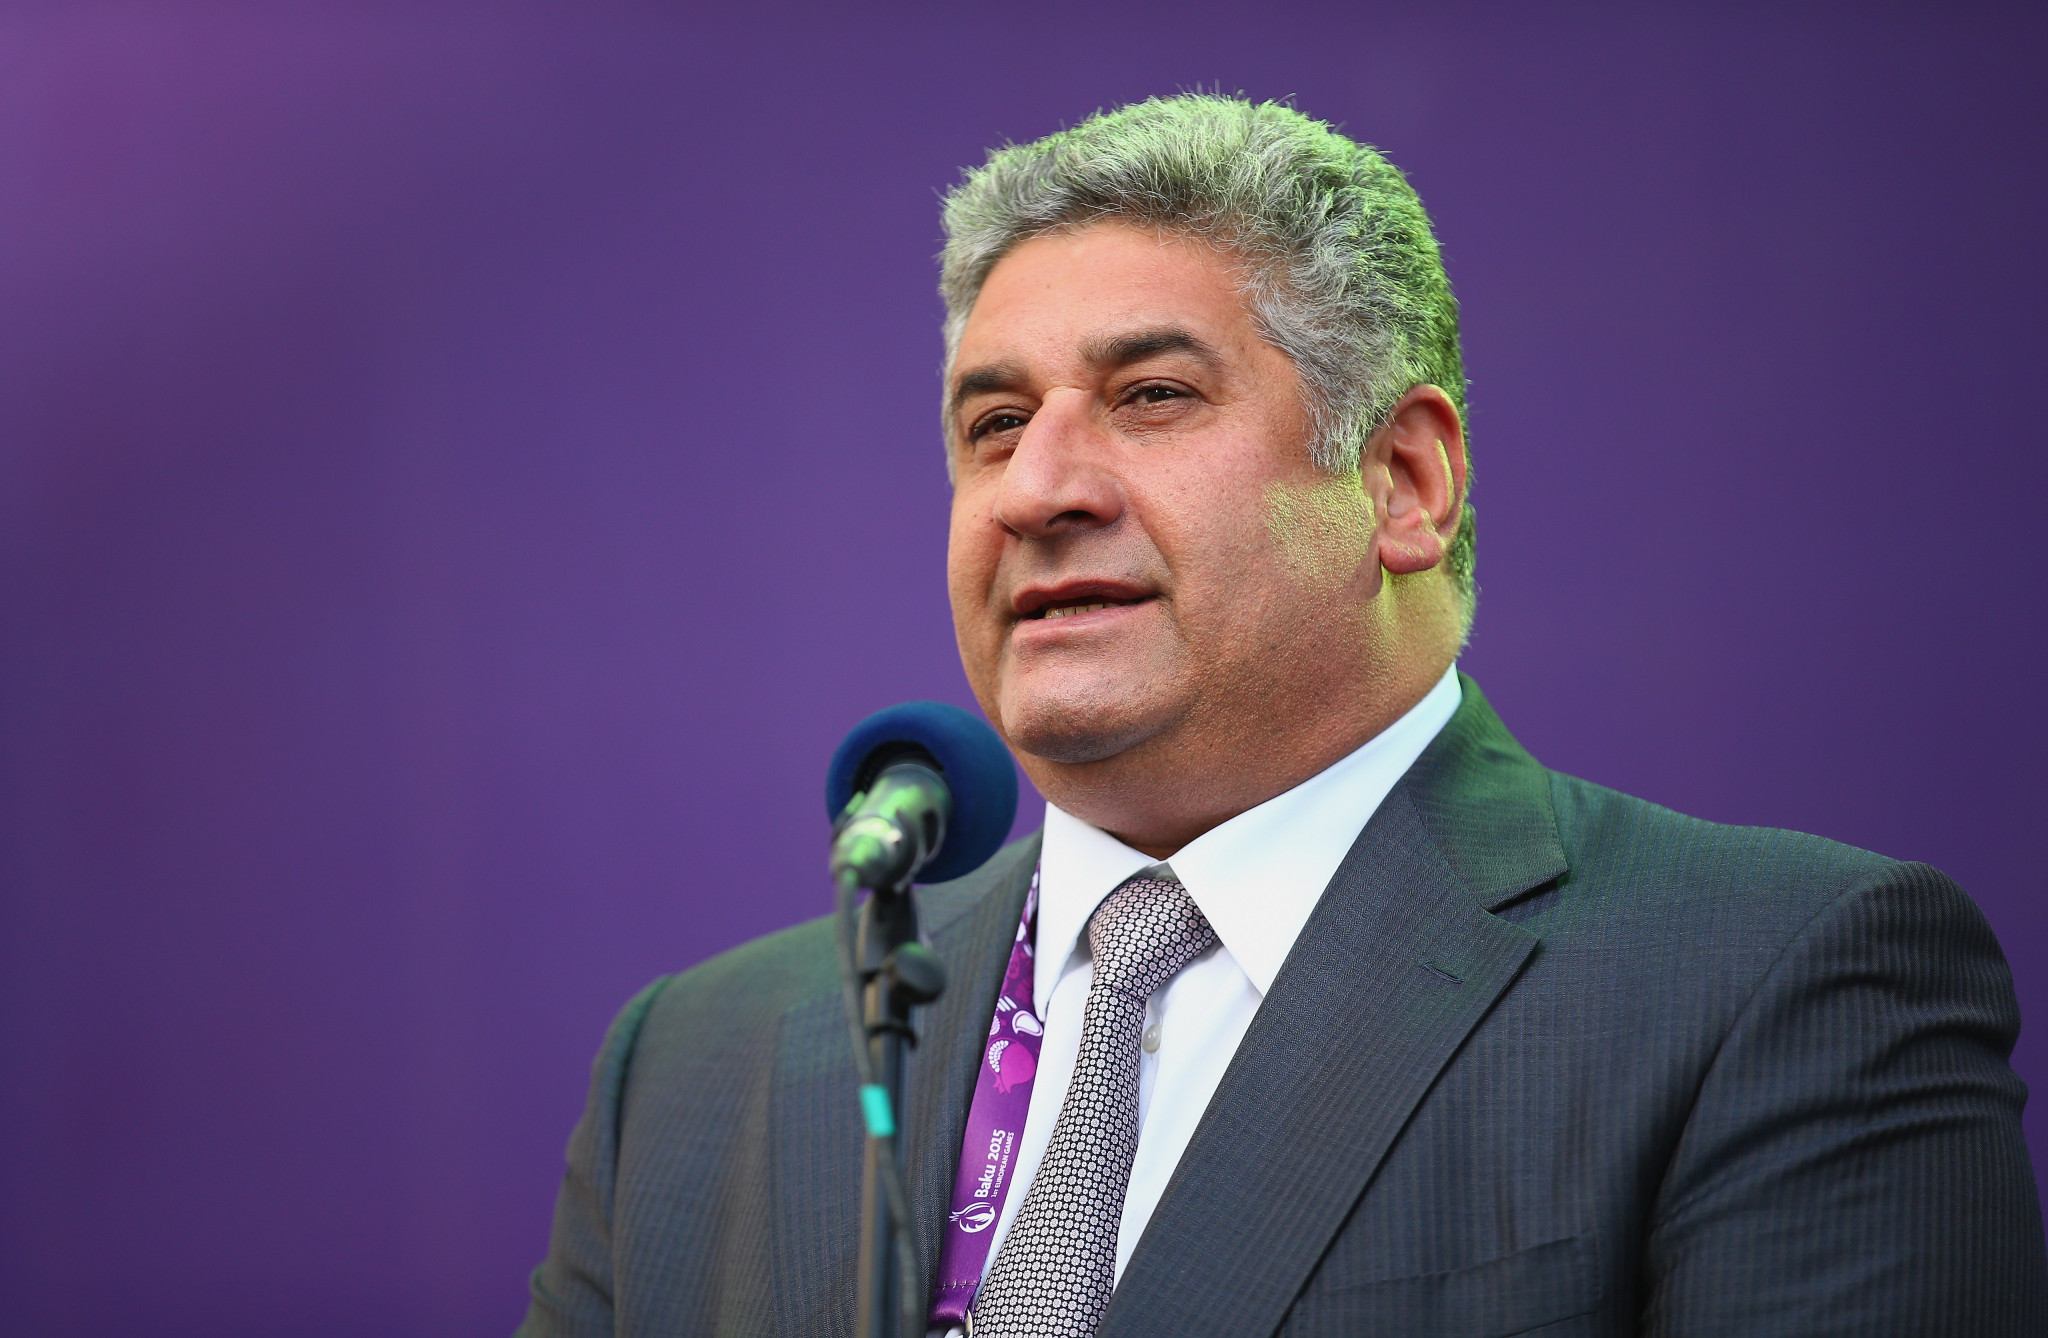 Azerbaijan Minister of Youth and Sport Azad Rahimov dies of cancer at age of 56